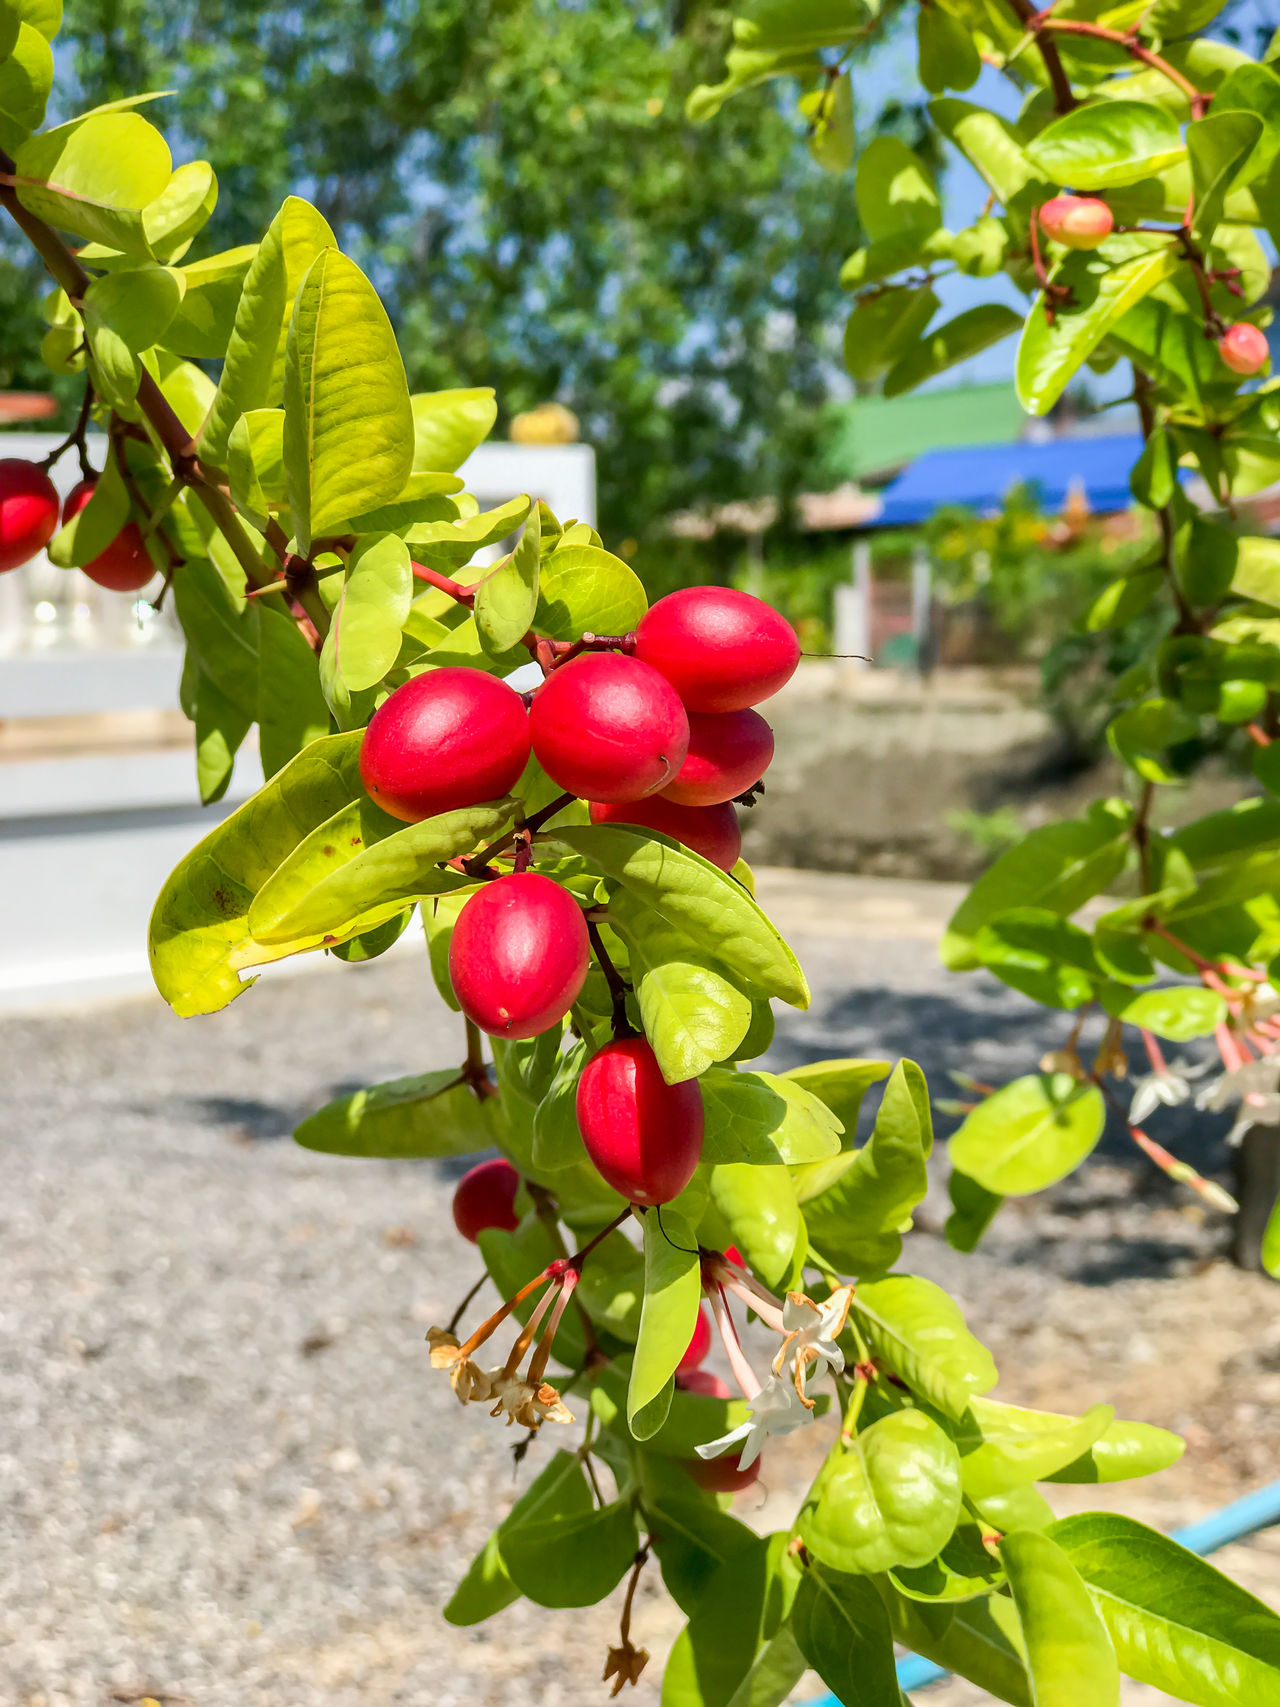 Carunda or Karonda fruit and green leaf on the tree Beauty In Nature Branch Close-up Day Focus On Foreground Food Food And Drink Freshness Fruit Green Color Growing Growth Healthy Eating Leaf Nature No People Outdoors Plant Red Tree Unripe